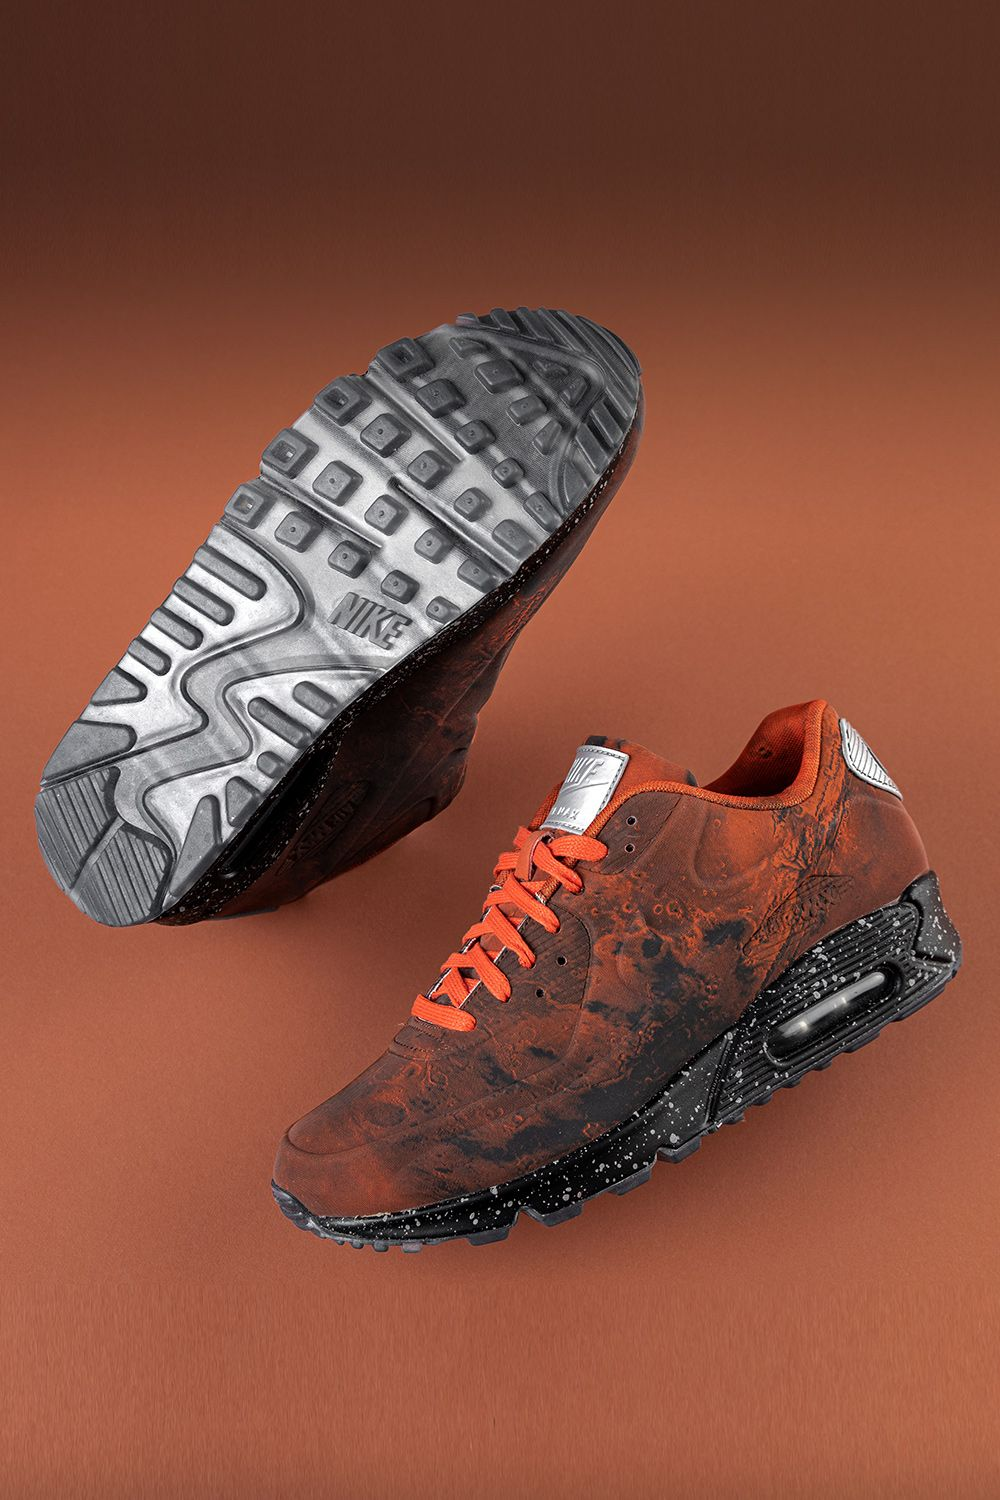 Nike Air Max 90 Qs Mars Landing Cd0920 600 2019 In 2020 Nike Air Max Nike Air Air Max 90